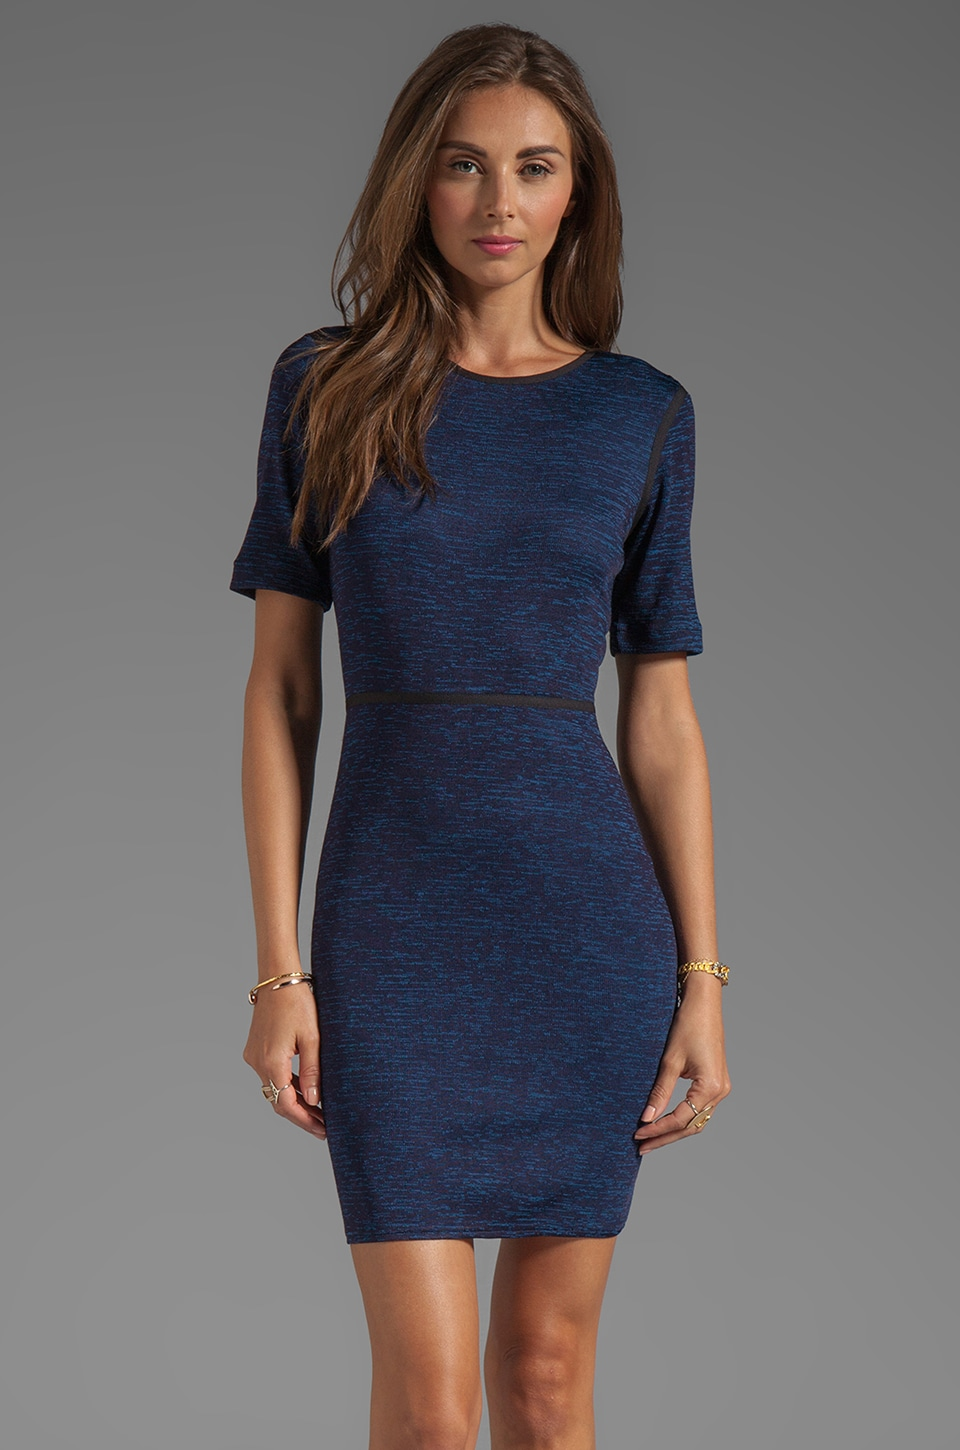 Tibi Space Dyed Jersey Dress in Blue